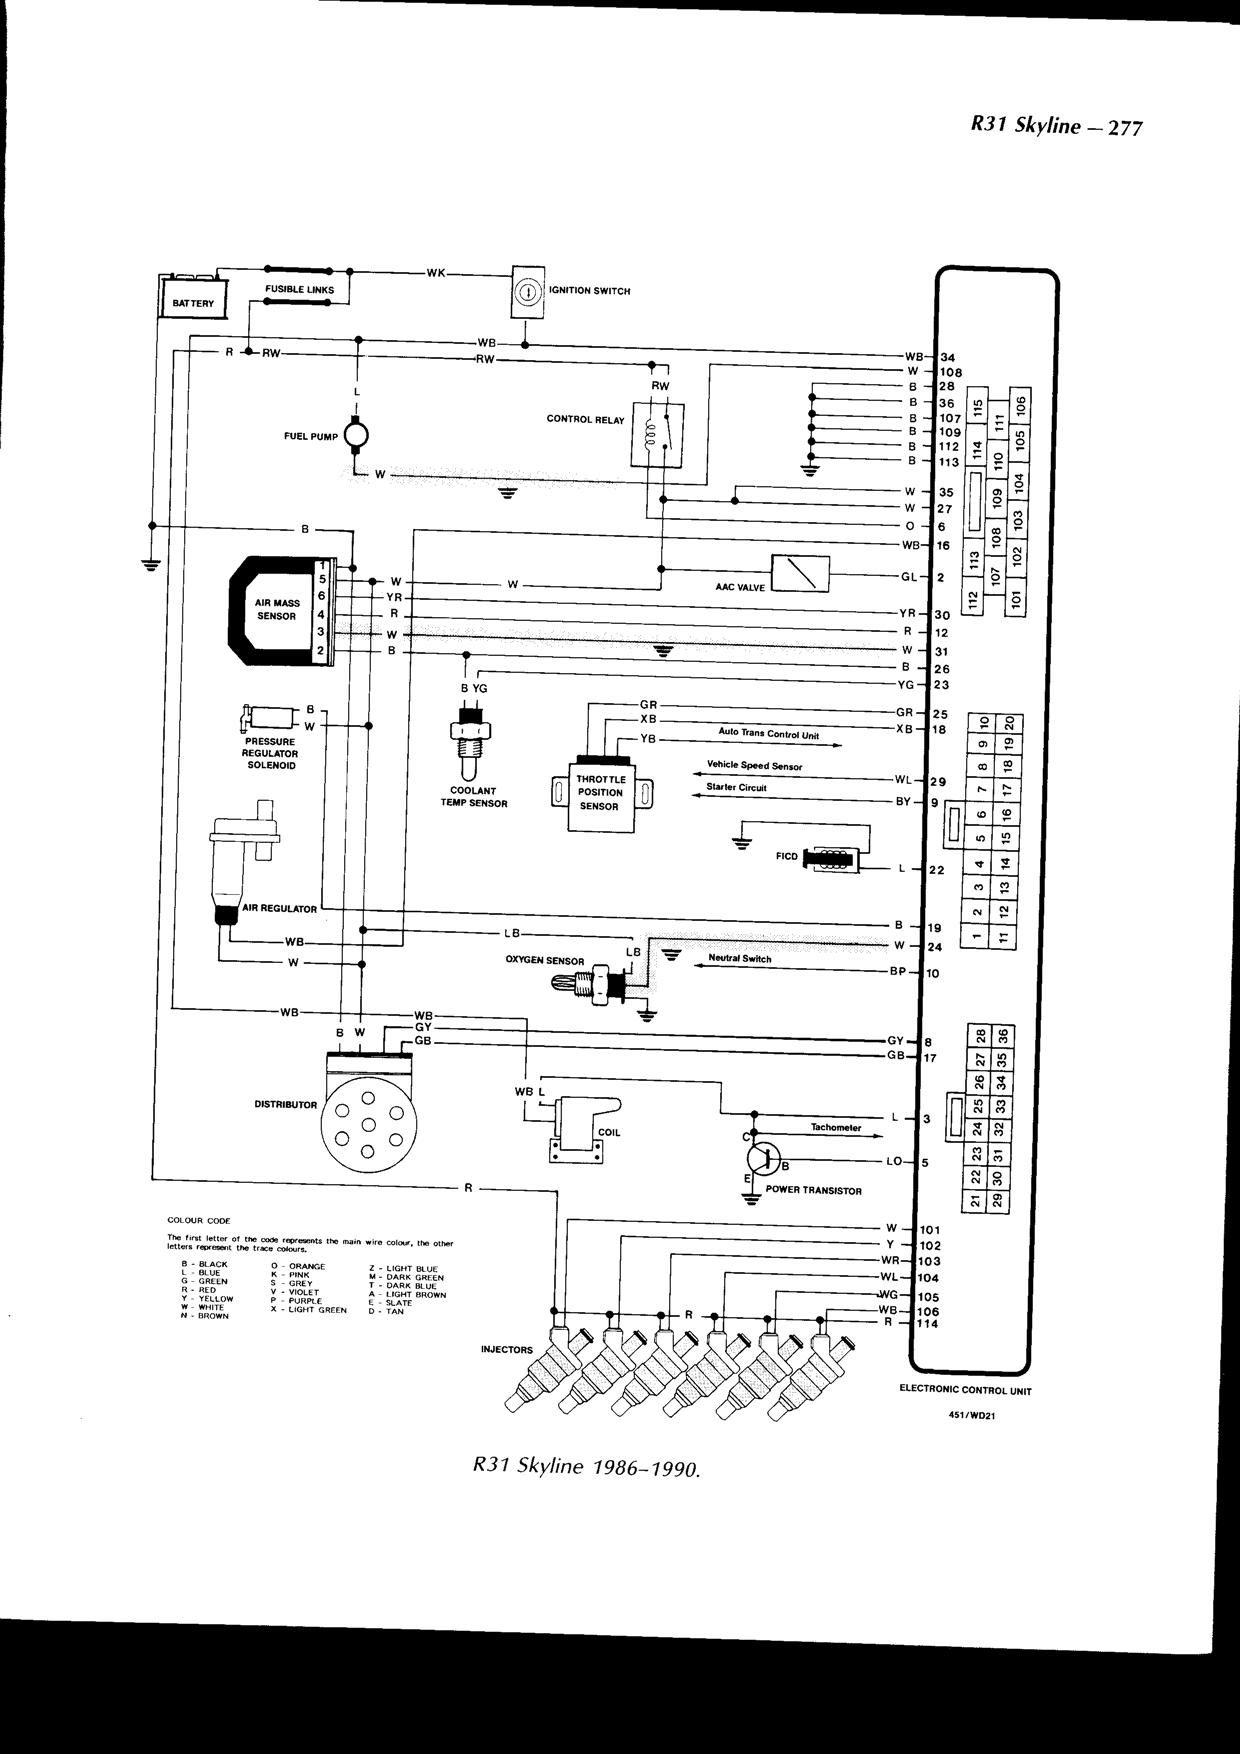 Nissan 1400 electrical wiring diagram | Nissan | Pinterest ...